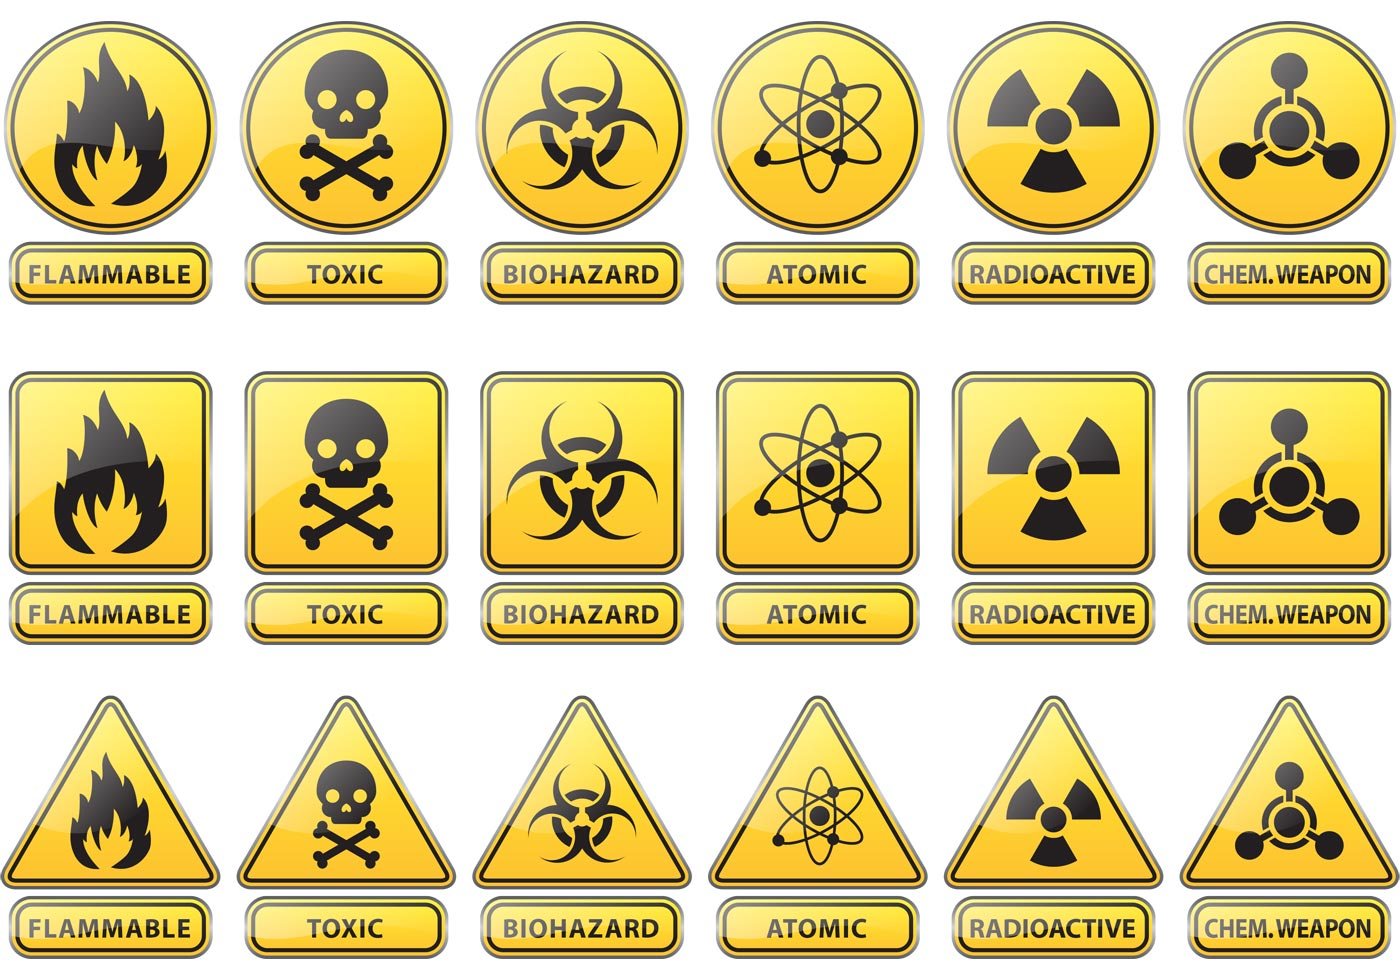 photograph regarding Quarantine Sign Printable referred to as Caution Indications No cost Vector Artwork - (106,005 Totally free Downloads)